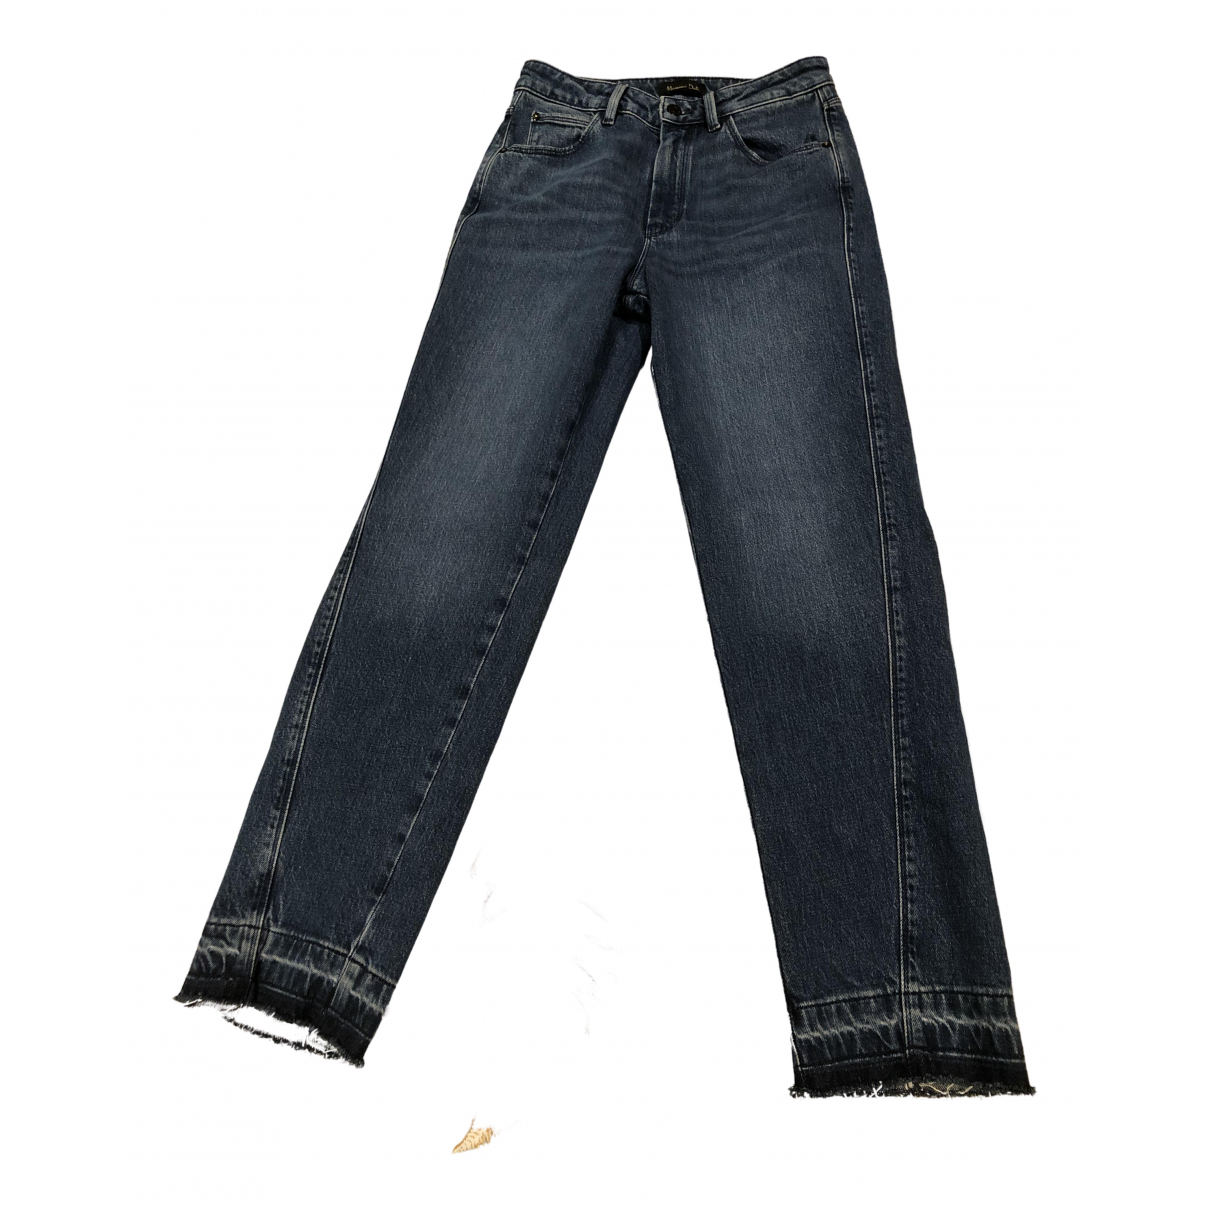 Massimo Dutti N Blue Denim - Jeans Jeans for Women 27 US